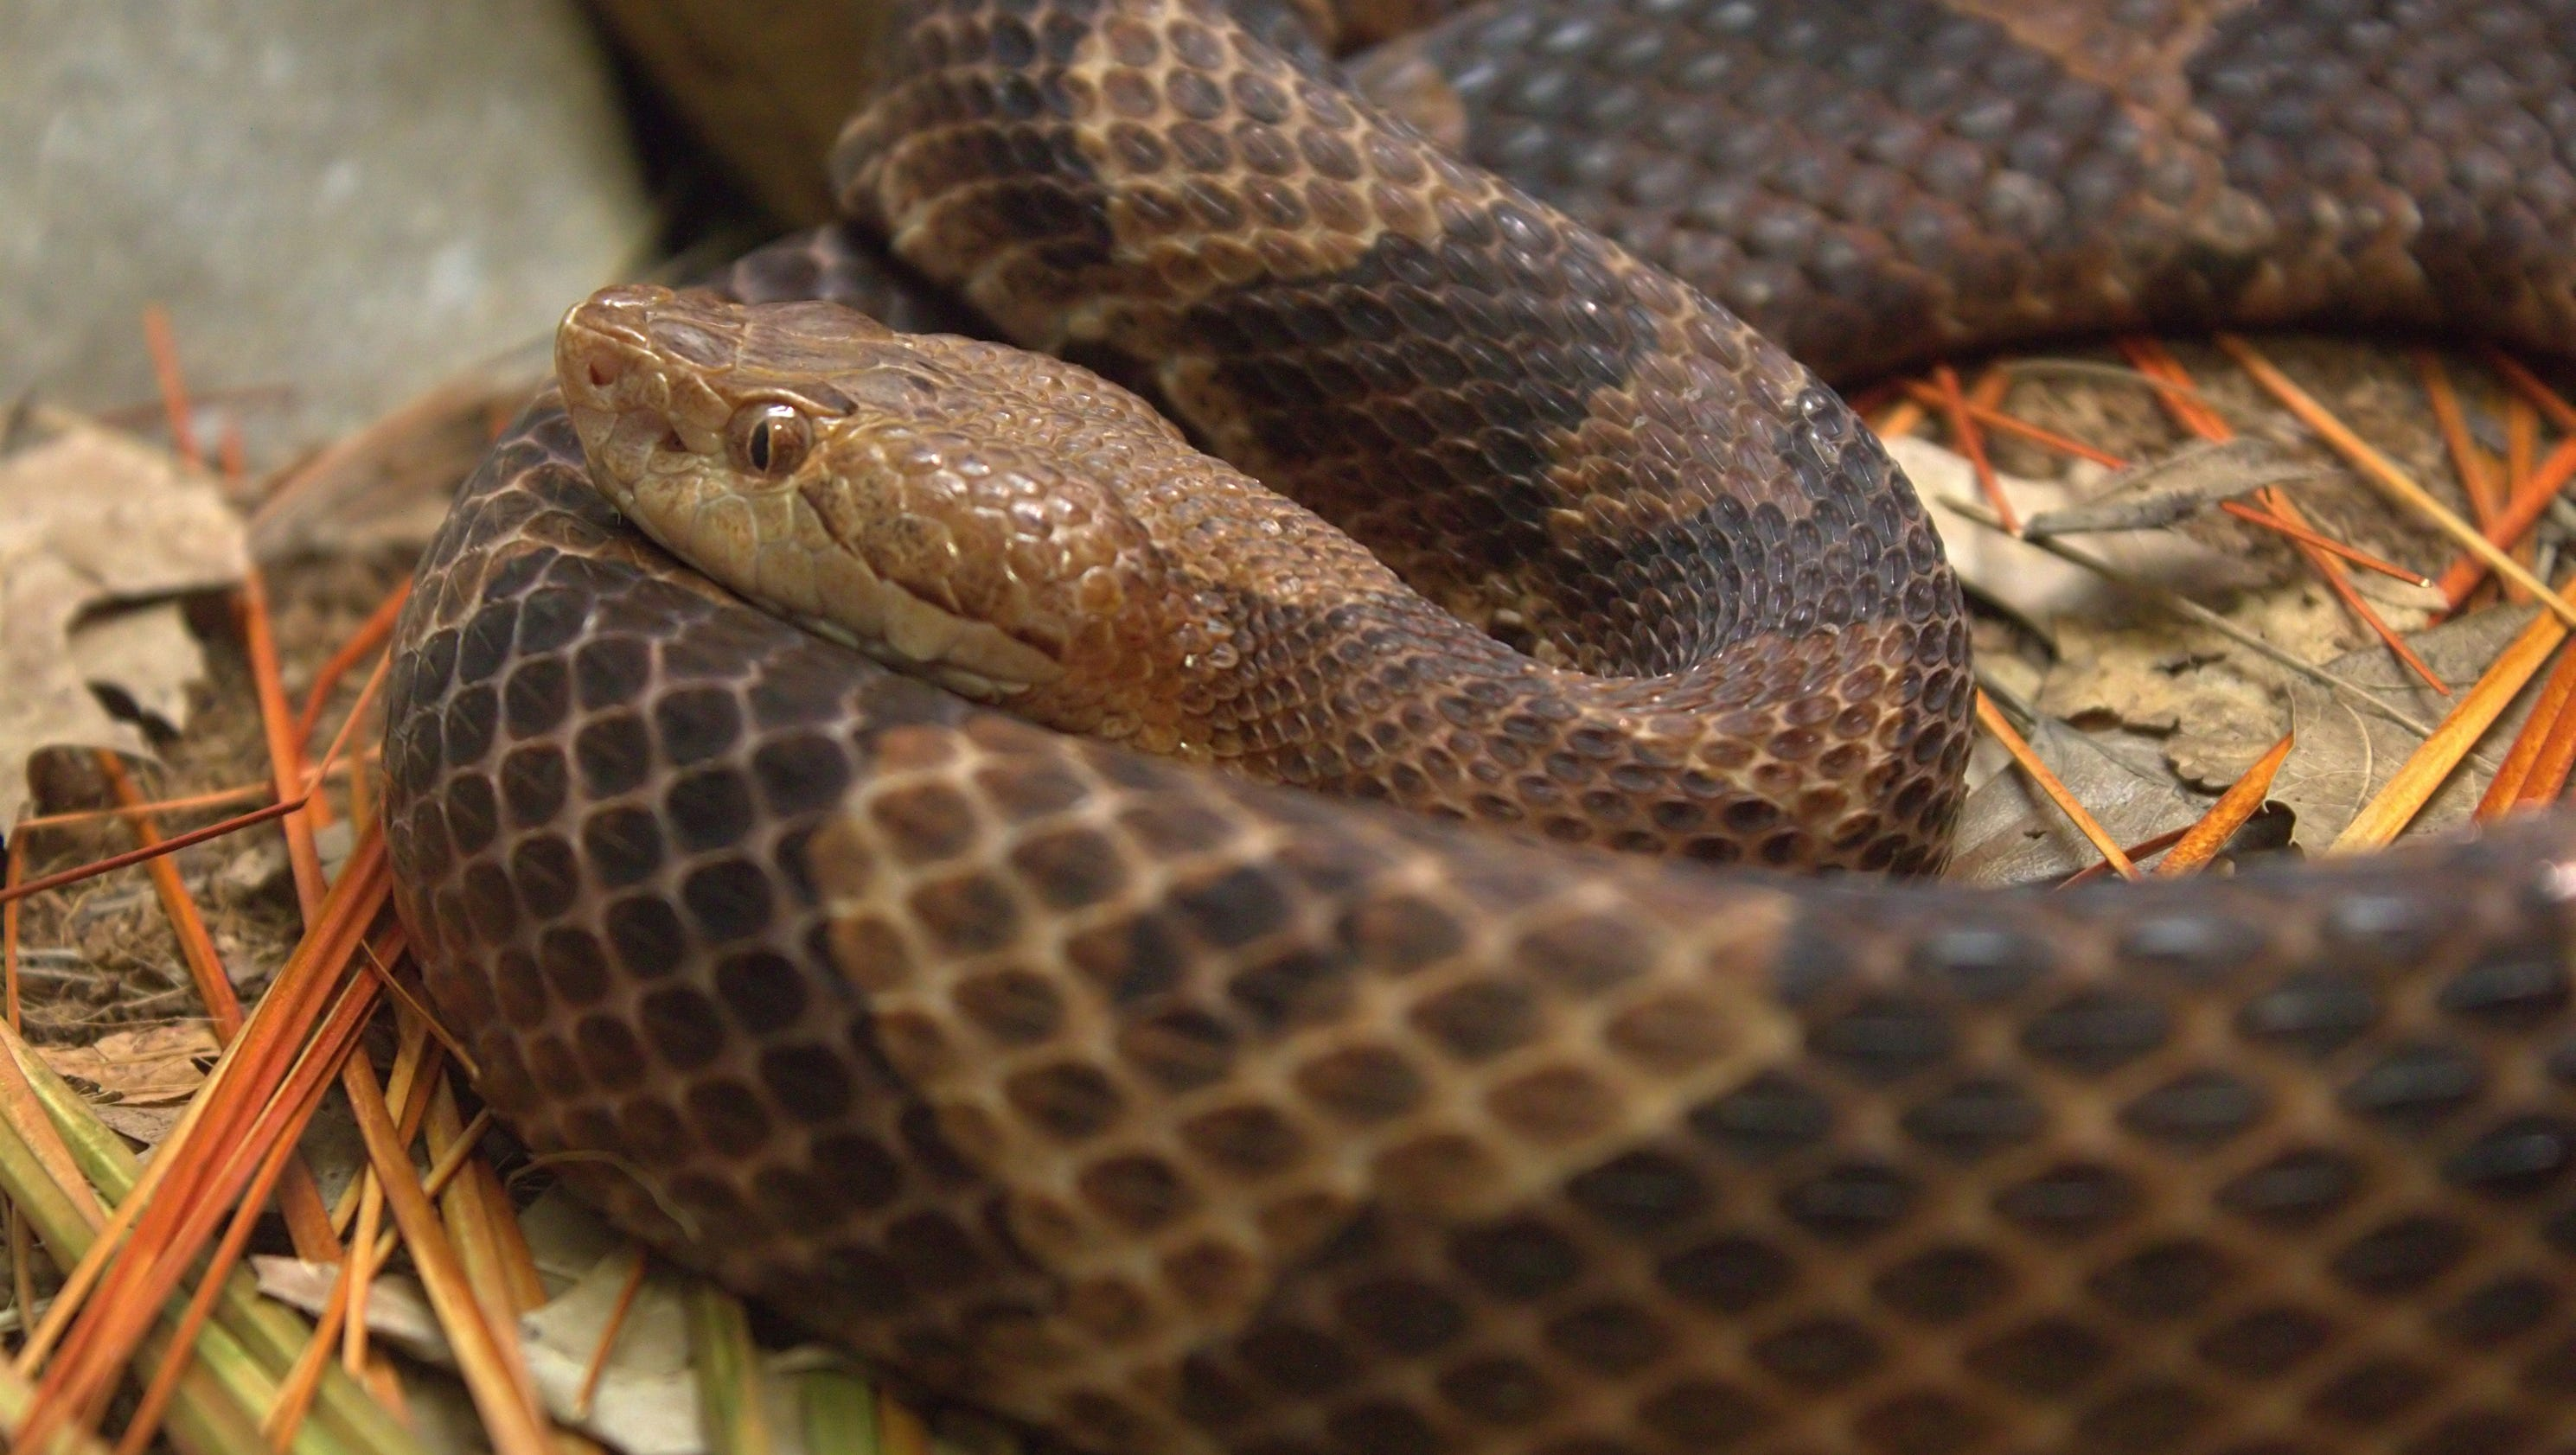 e013bea9f699 What you need to know about copperhead snakes in Indiana